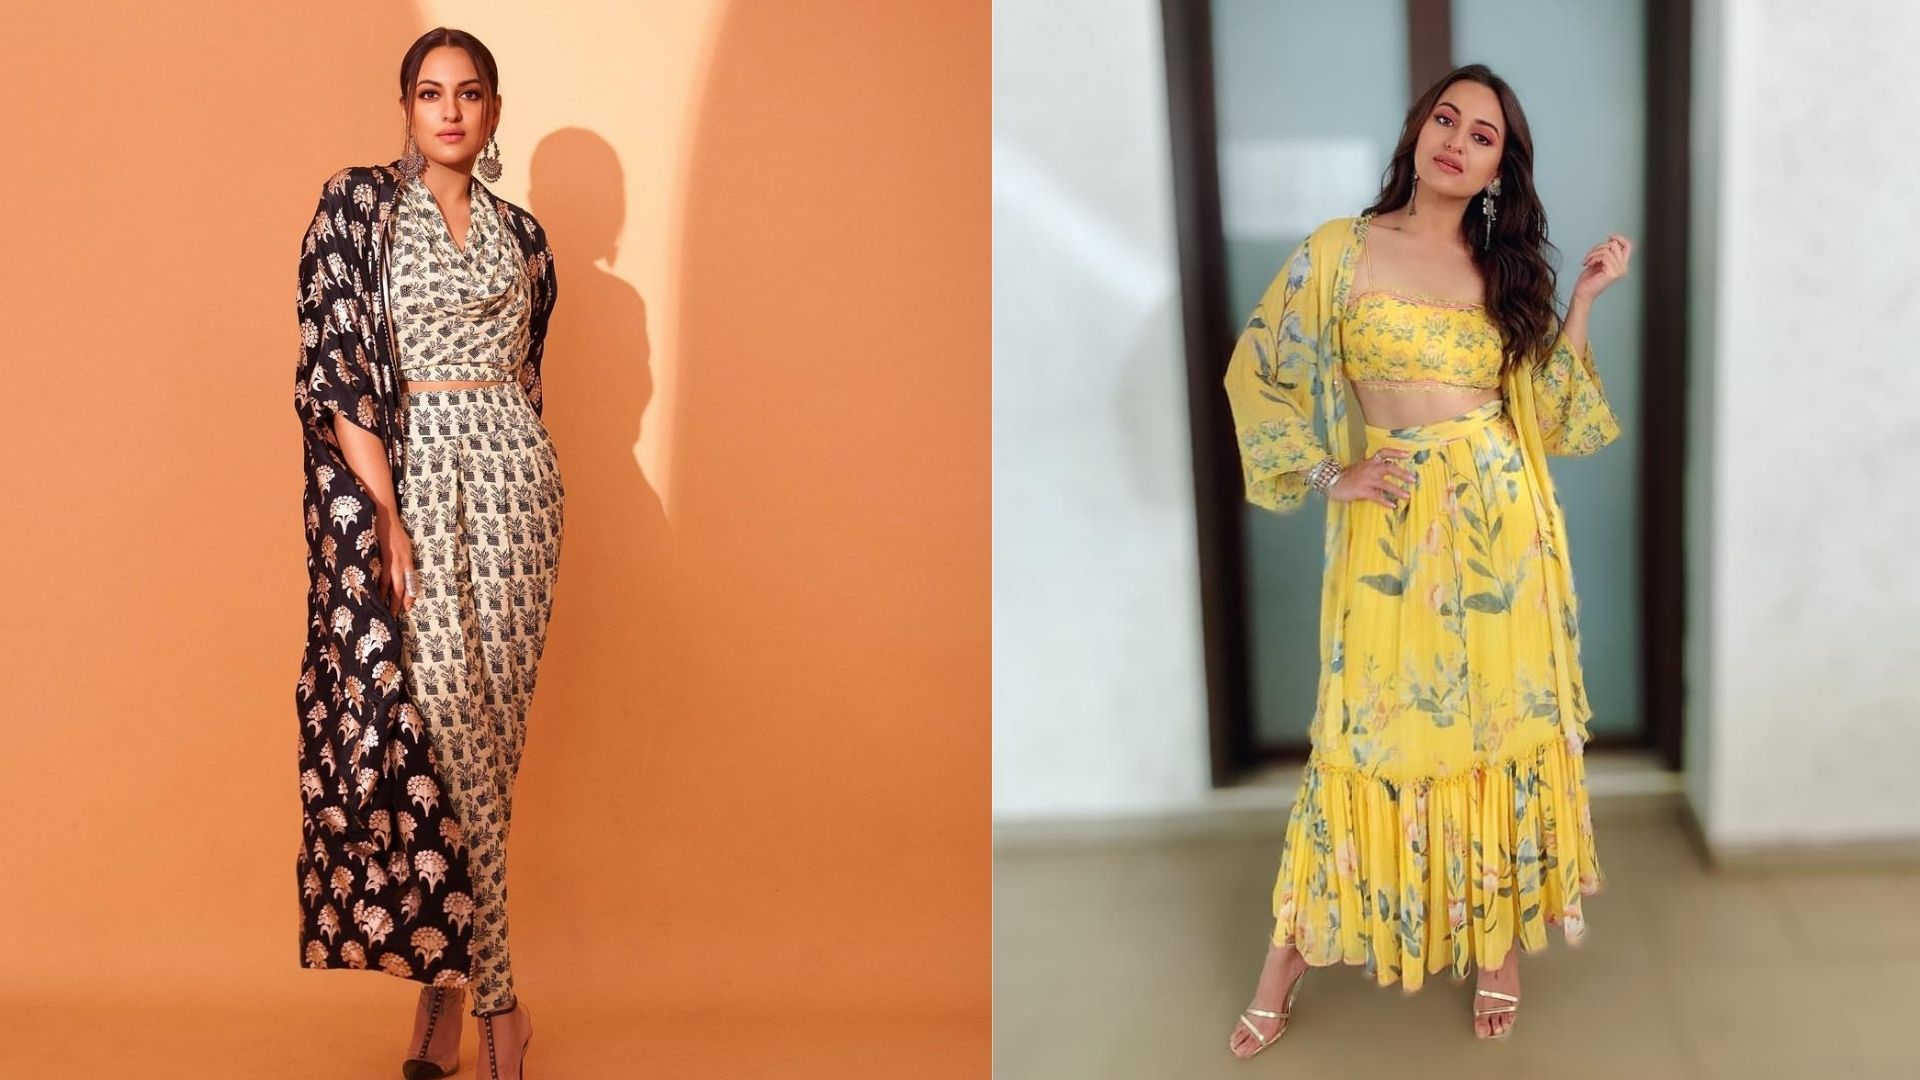 Check Out Sonakshi Sinha's New Stylish Indo-Western Outfit That Has Left Us Drooling